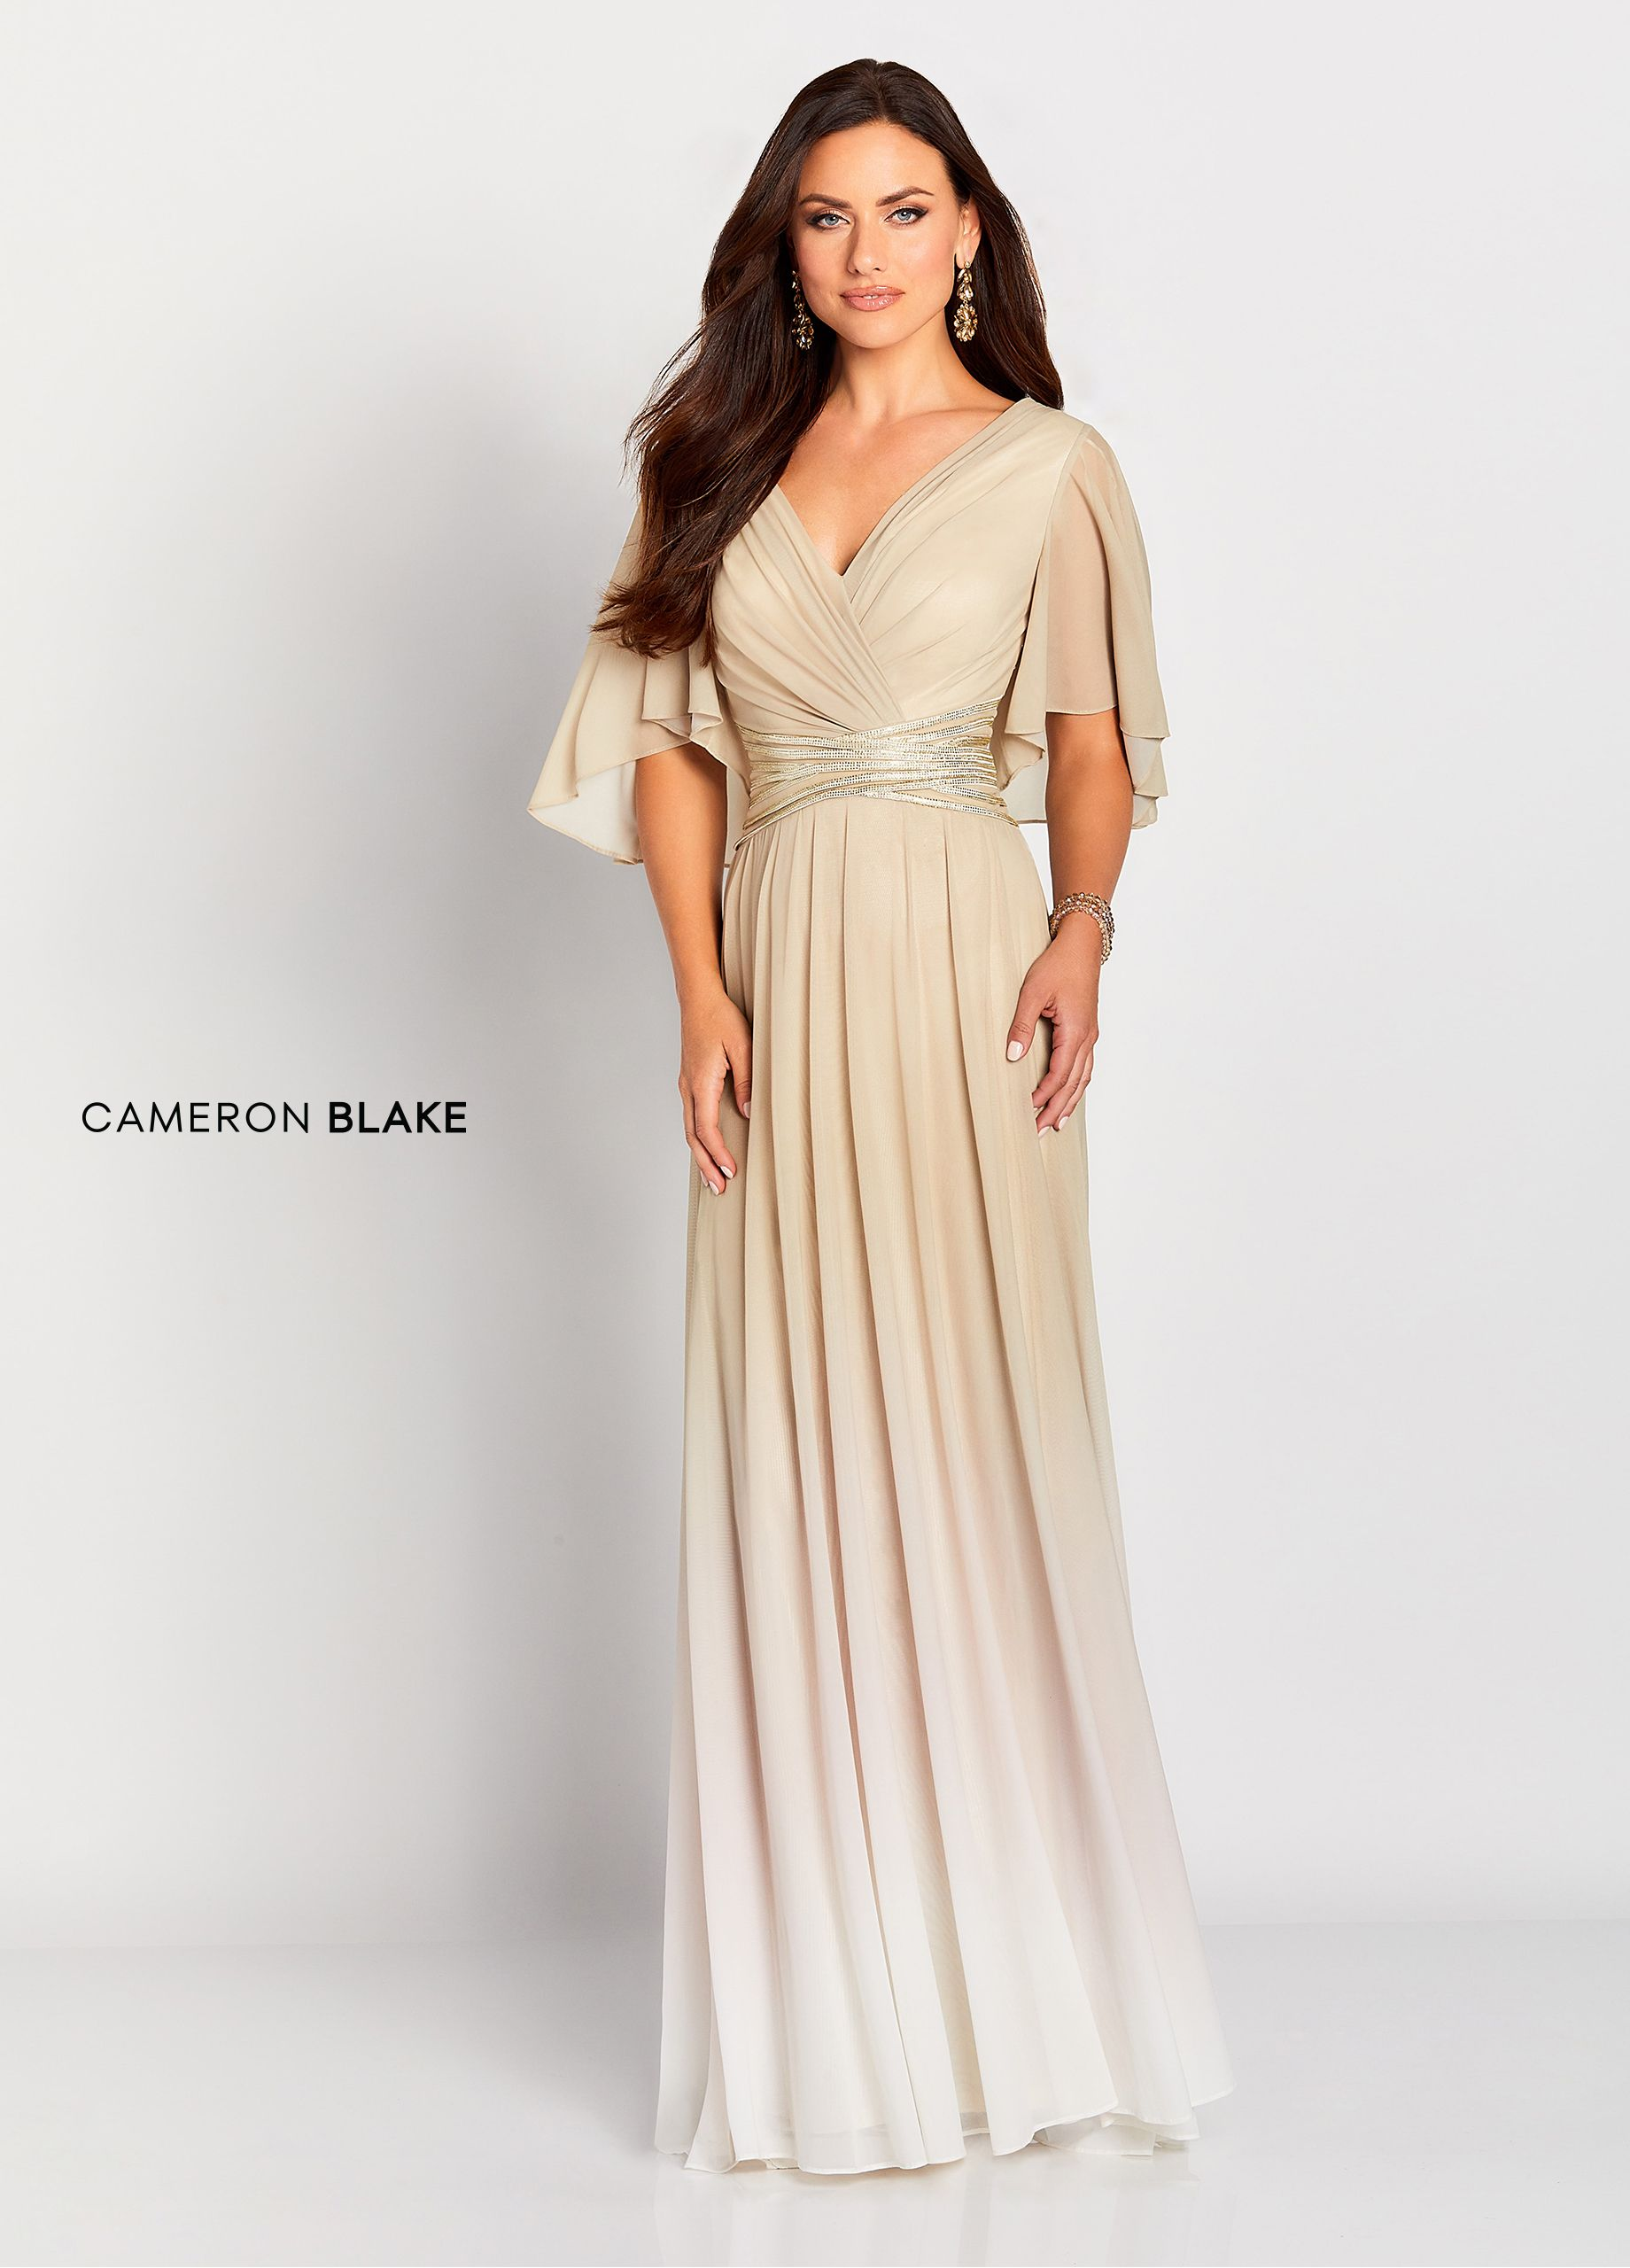 02e2b064e99d9 Cameron Blake 119657 - Three quarter sleeve ombre strech mesh a-line gown  with a sheer flutter sleeve, ruched v-neckline, banded waist detail that is  beaded ...